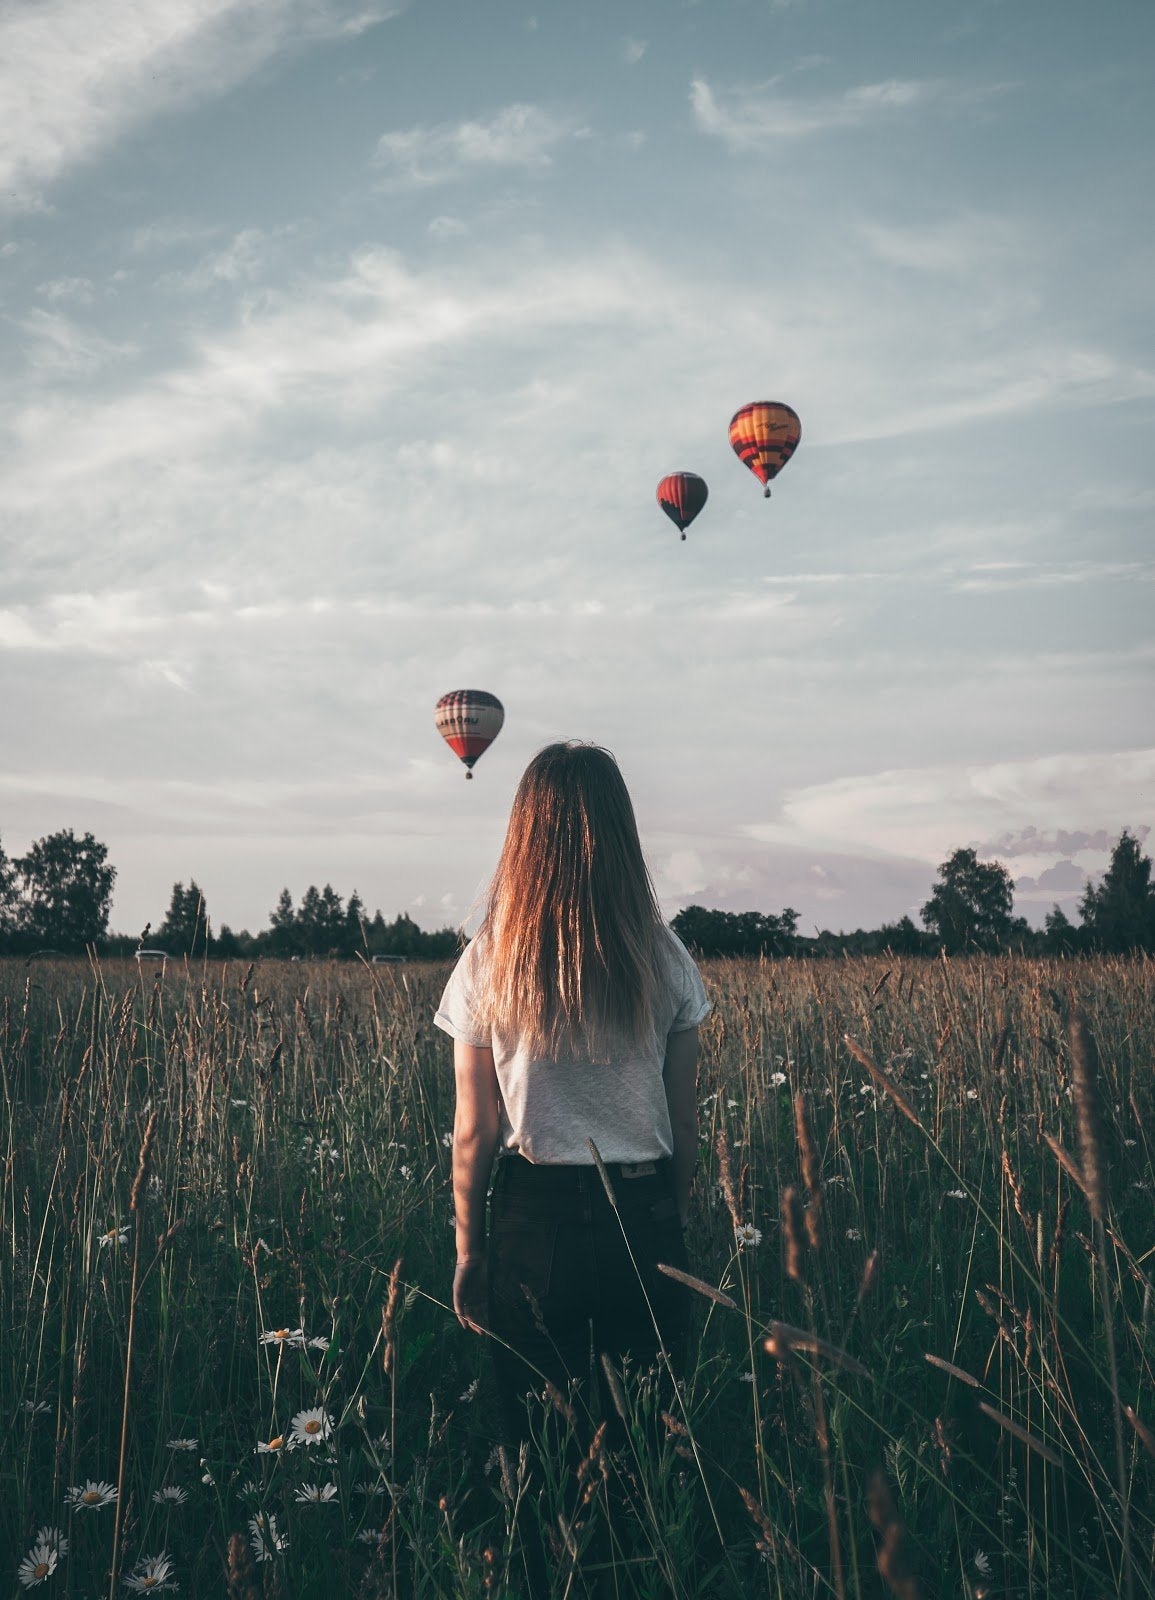 Girl in a flower field with hot air balloons above by Naletu